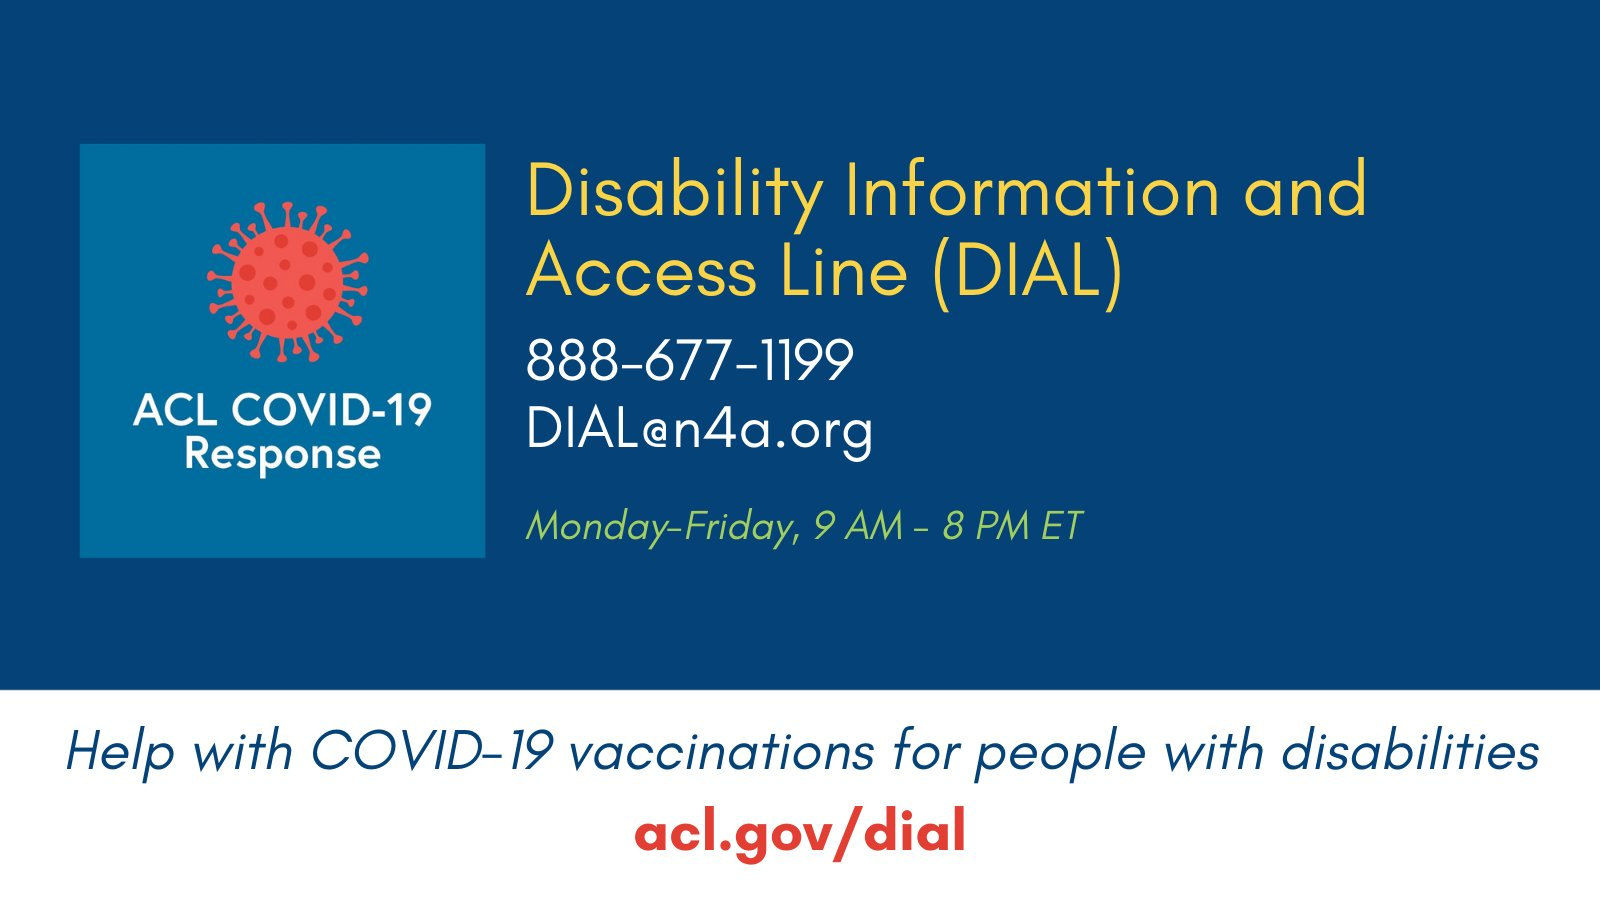 Disability Information and Access Line (DIAL). 888-677-1199 or DIAL@n4a.org. Monday - Friday, 9am - 8pm ET. COVID-19 vaccinations for people with disabilities. acl.gov/dial